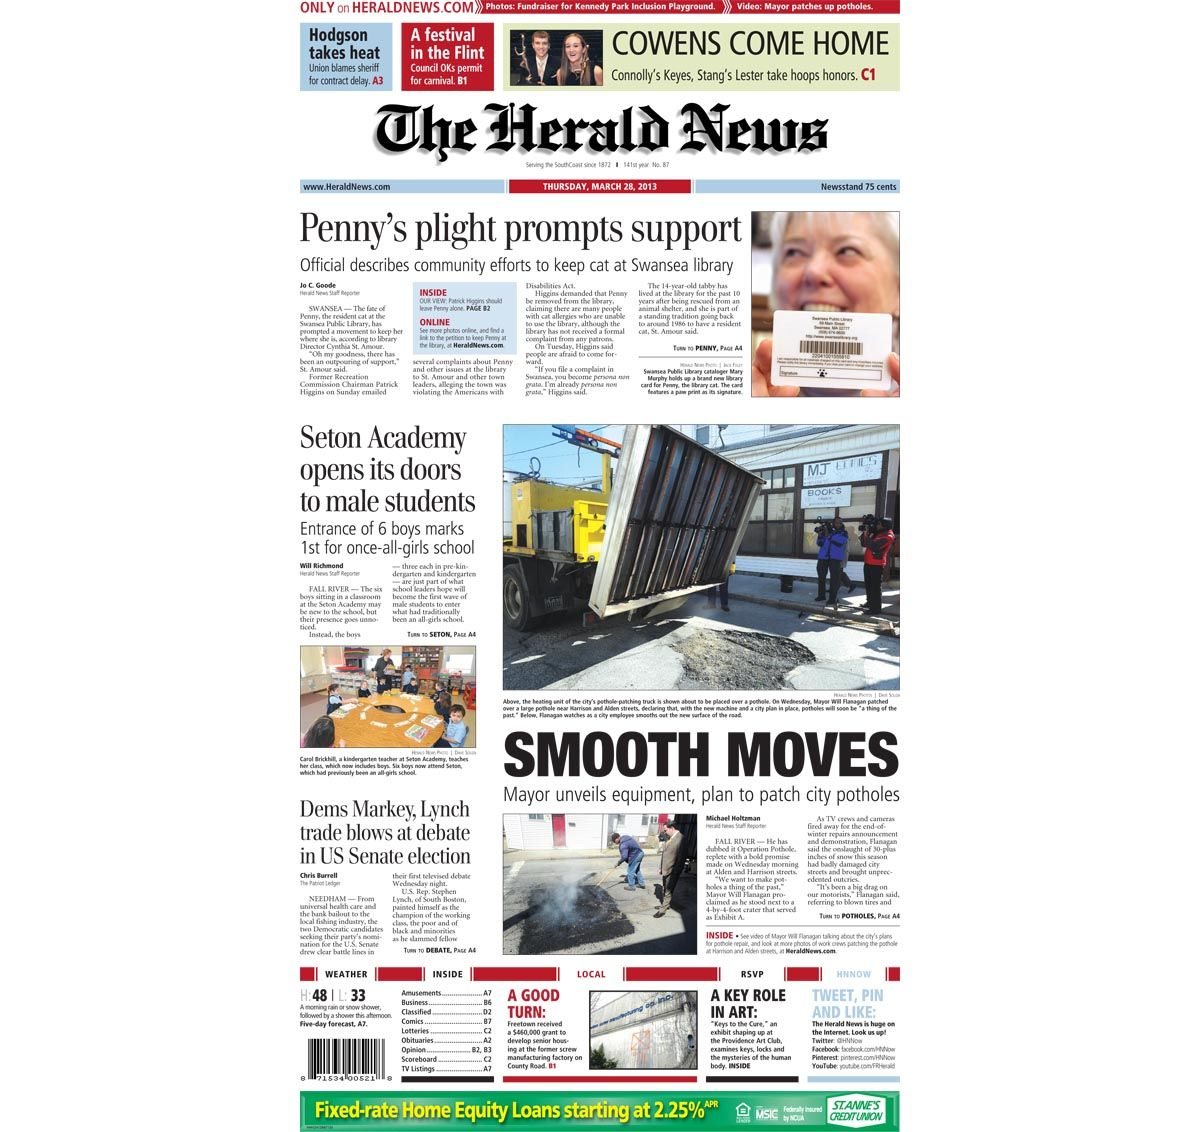 The front page of The Herald News for Thursday, March 28, 2013.